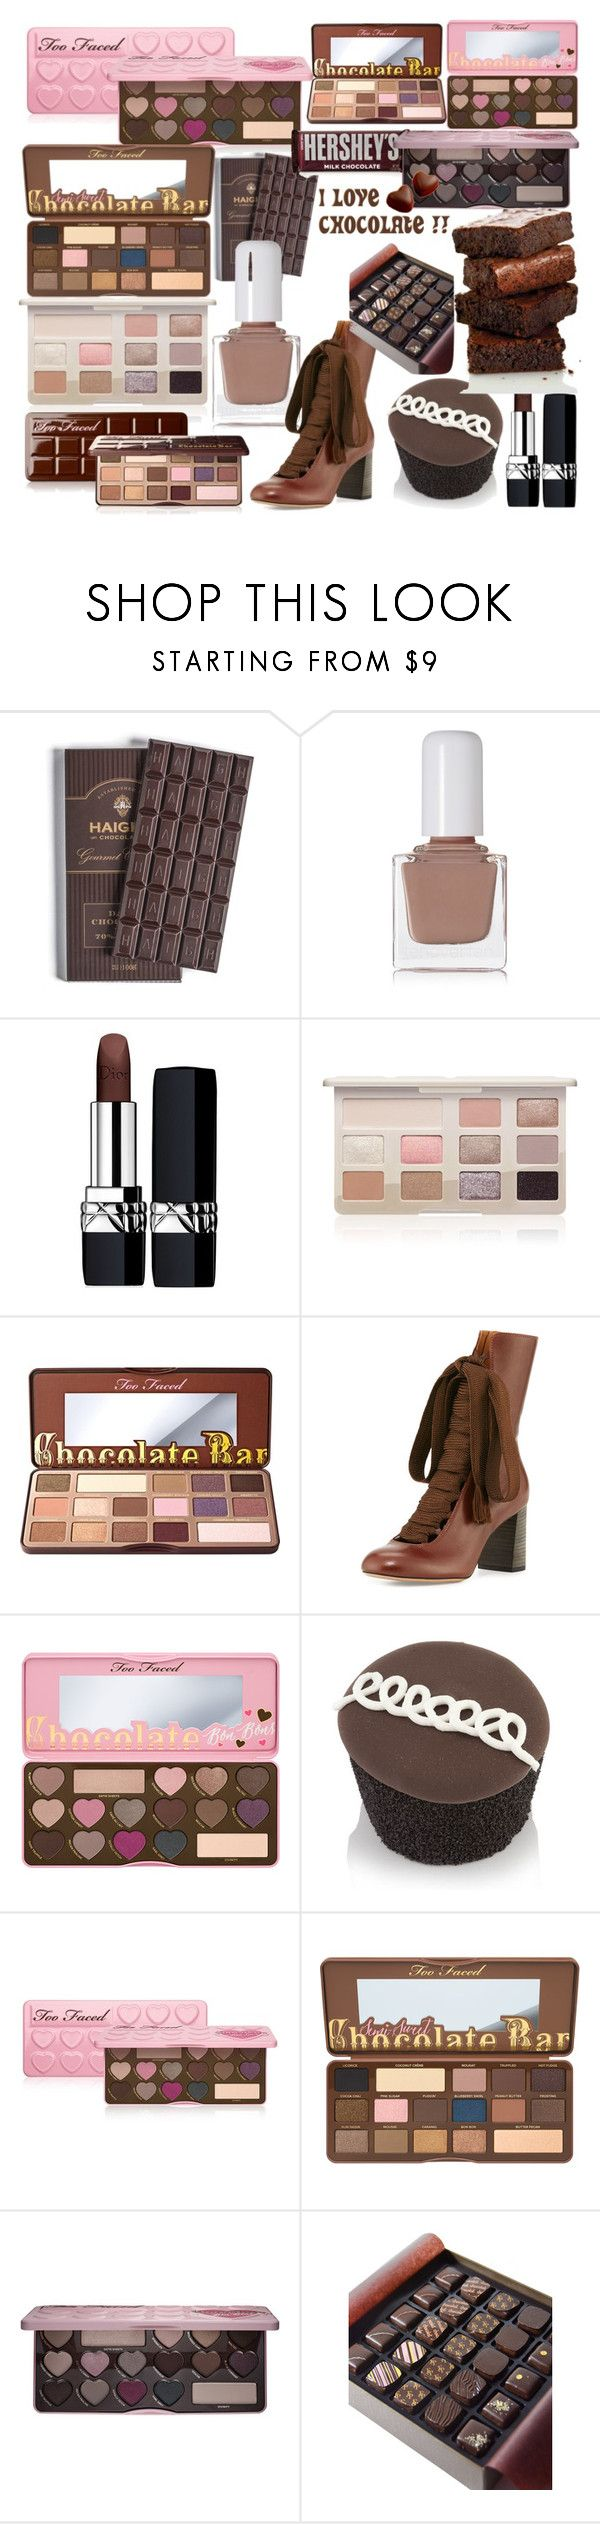 """""""Chocolate"""" by andieok on Polyvore featuring beauty, tenoverten, Christian Dior, Too Faced Cosmetics, Chloé, Hershey's, chocolate and choc"""